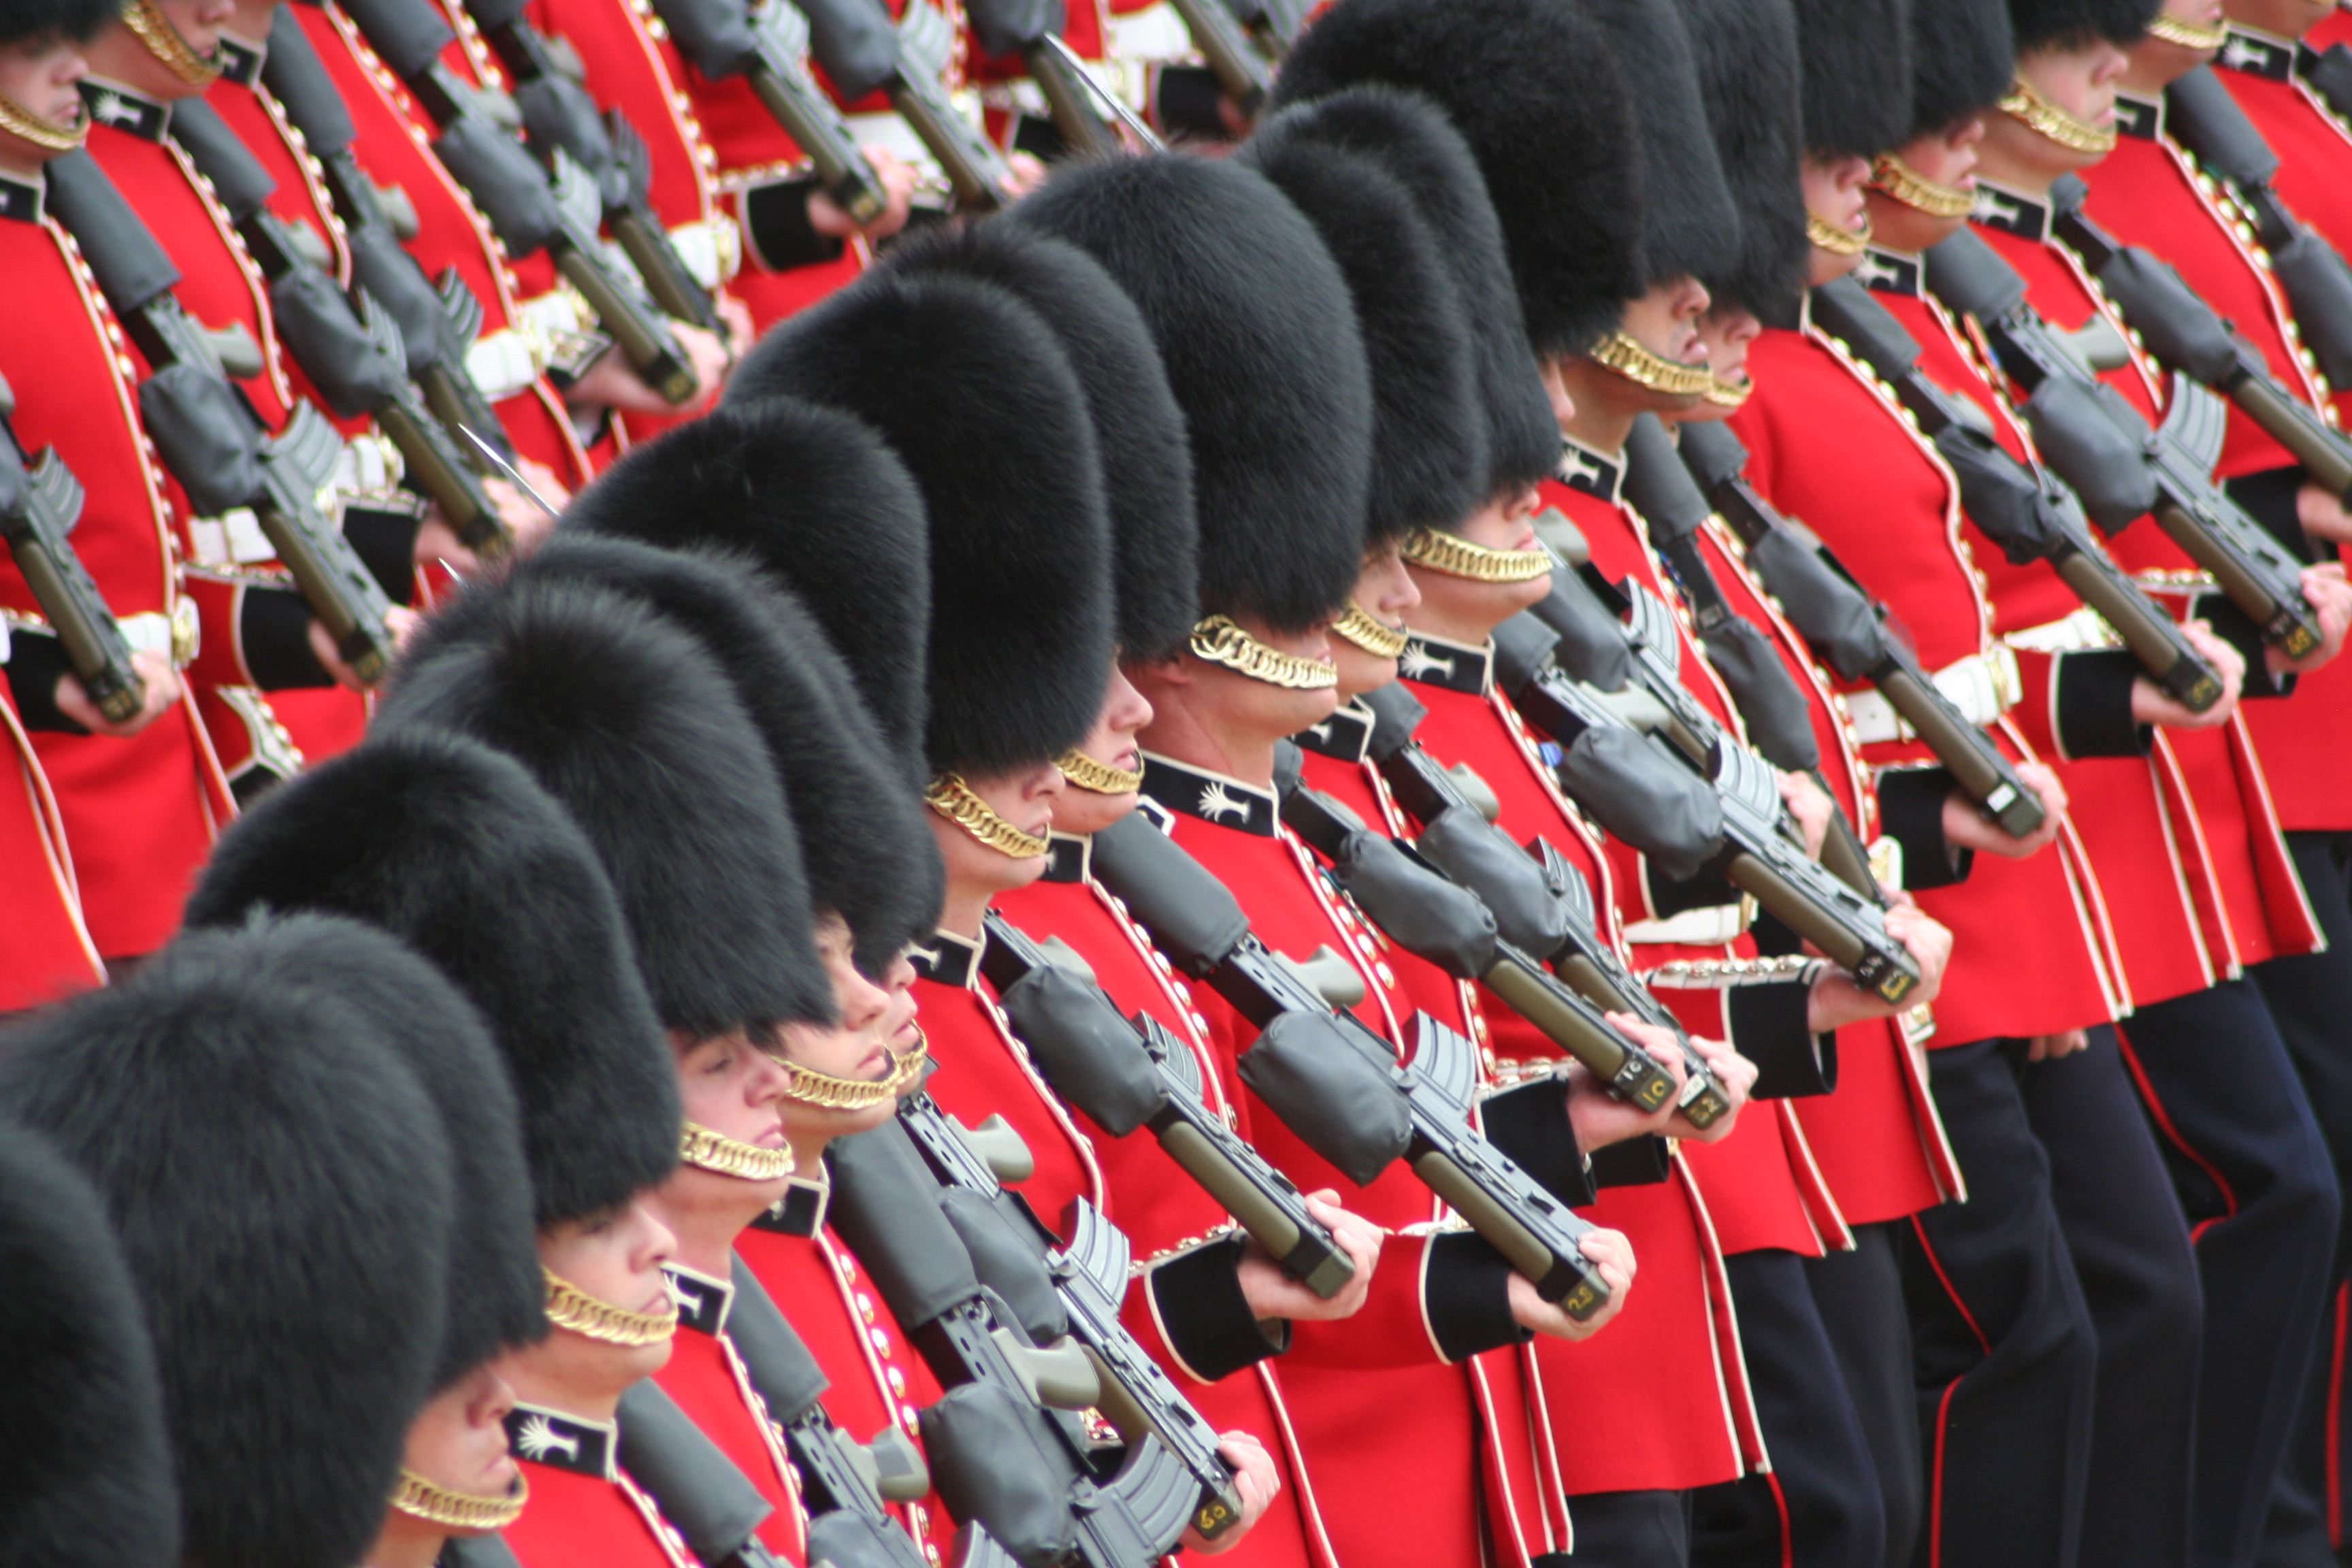 File:Soldiers Trooping the Colour, 16th June 2007.jpg - Wikipedia, the ...